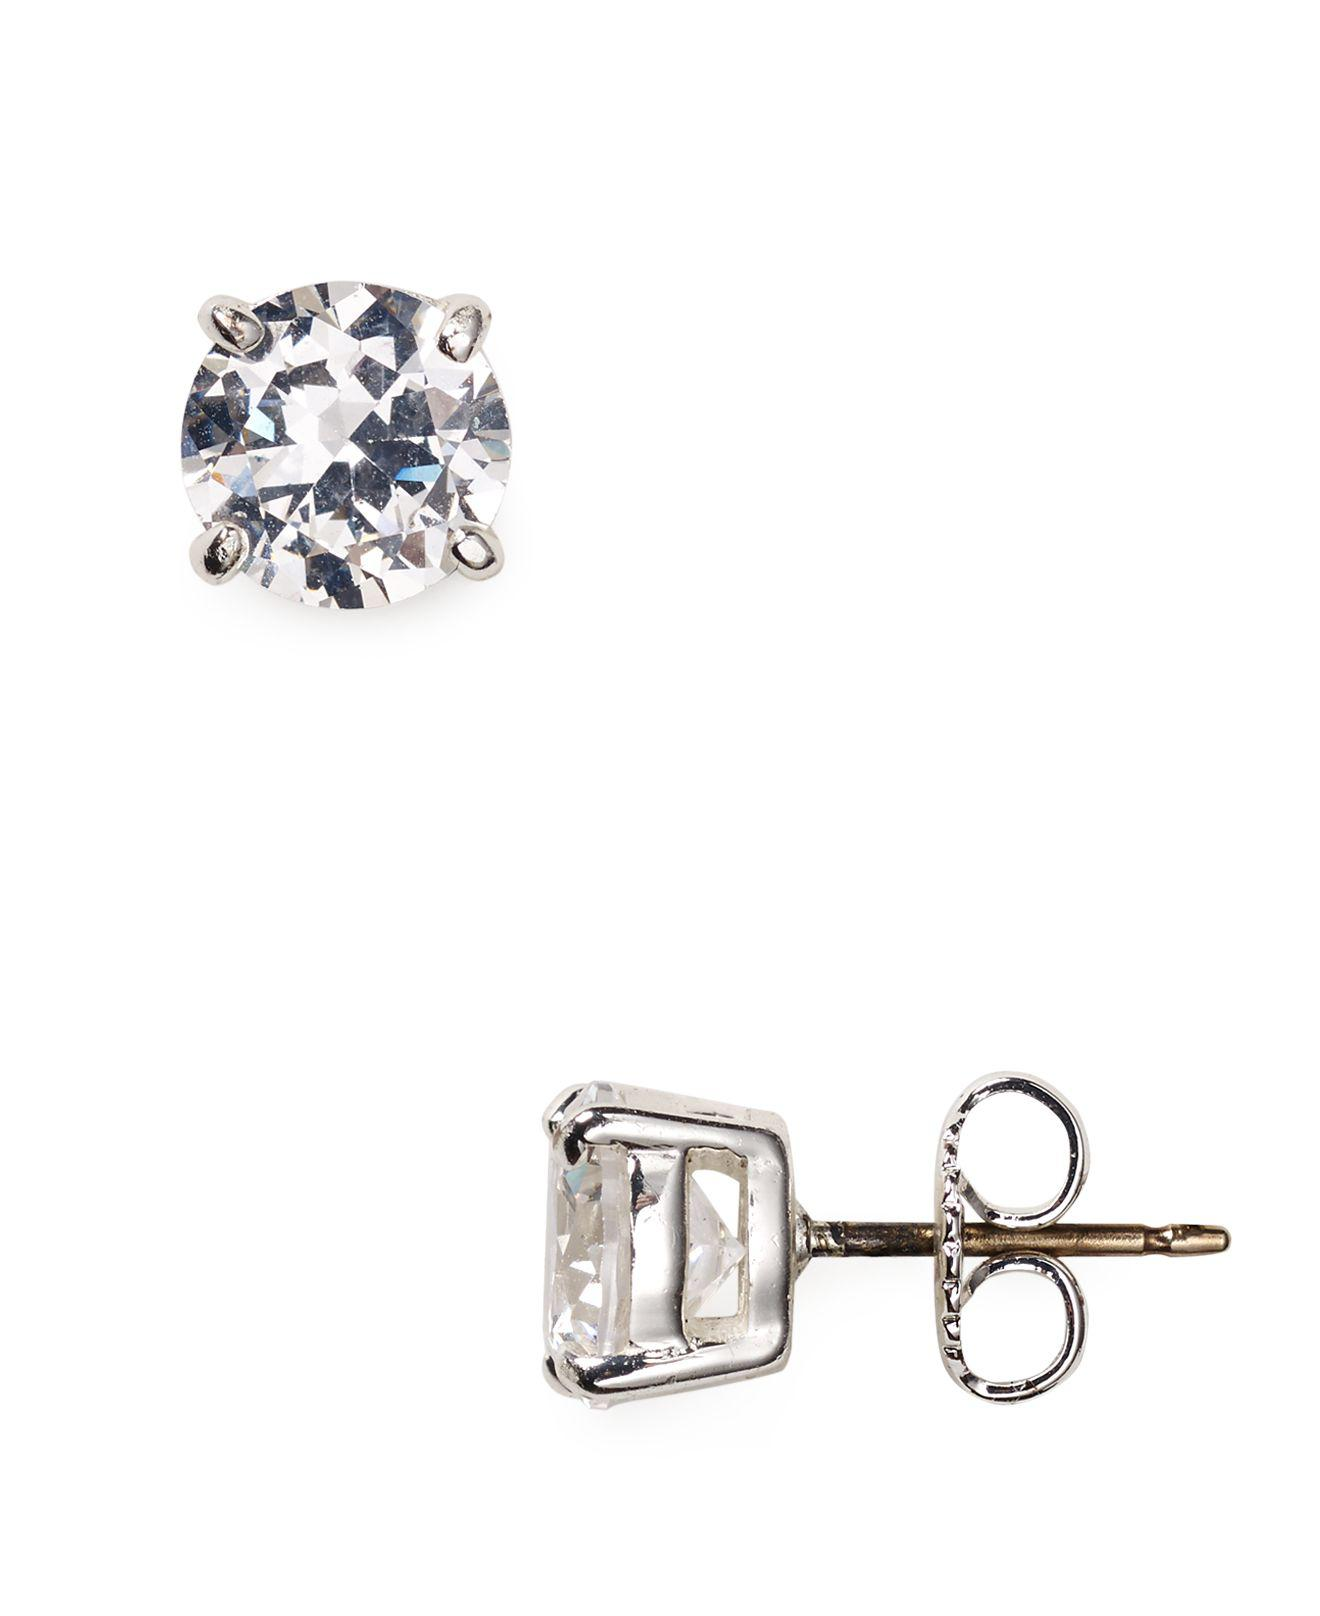 earrings stud small gold white johnlewis at pdp rubover cubic online zirconia buyibb rsp ibb main